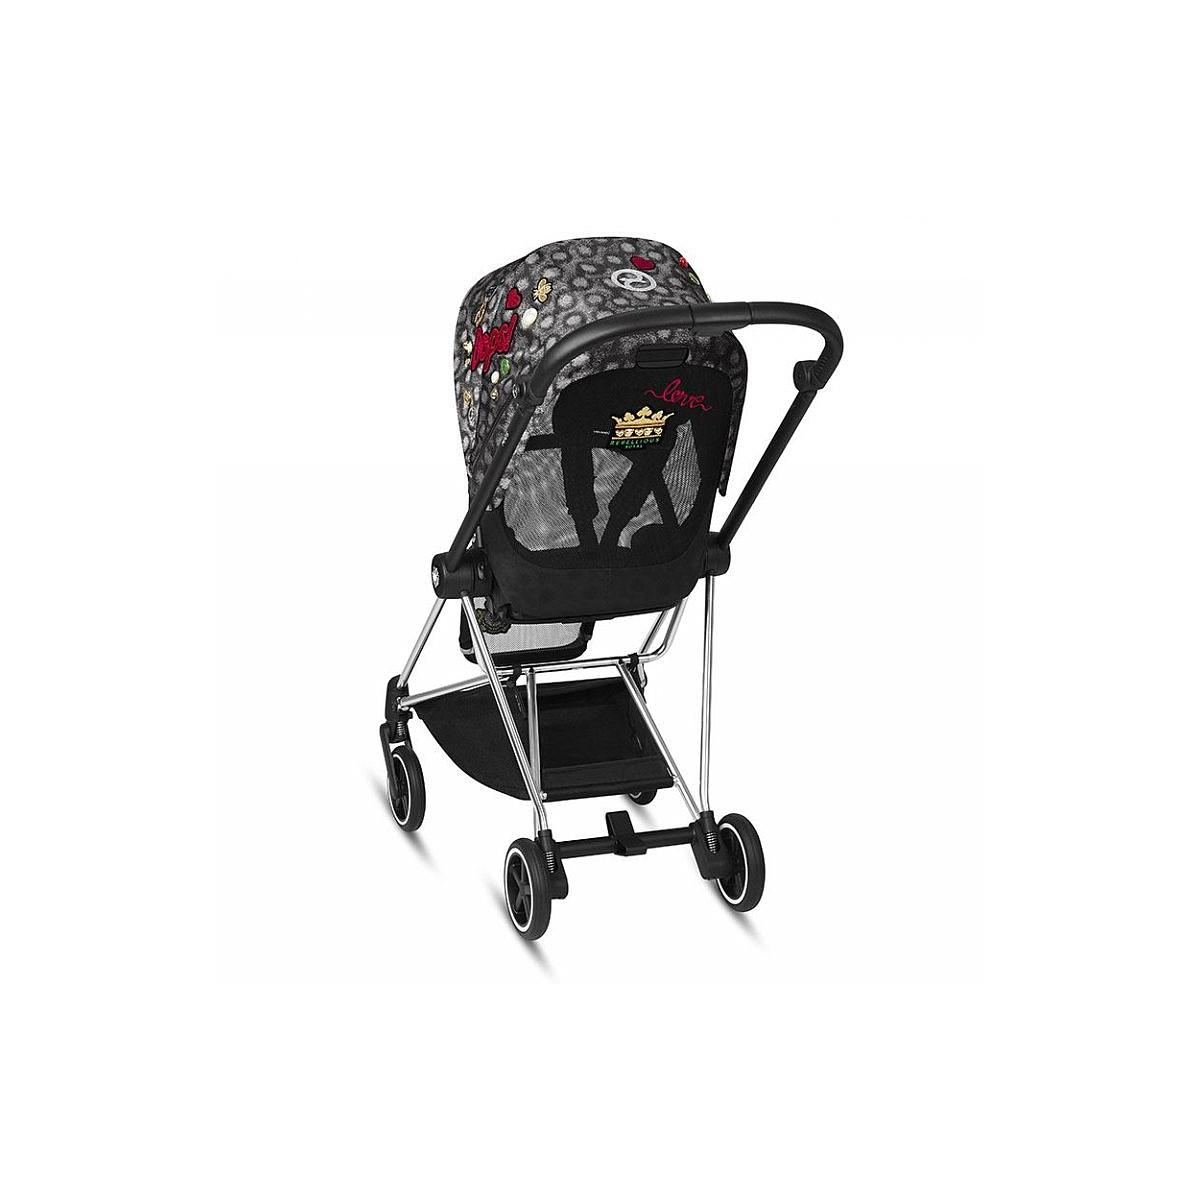 Assise-habillage poussette MIOS REBELLIOUS Cybex